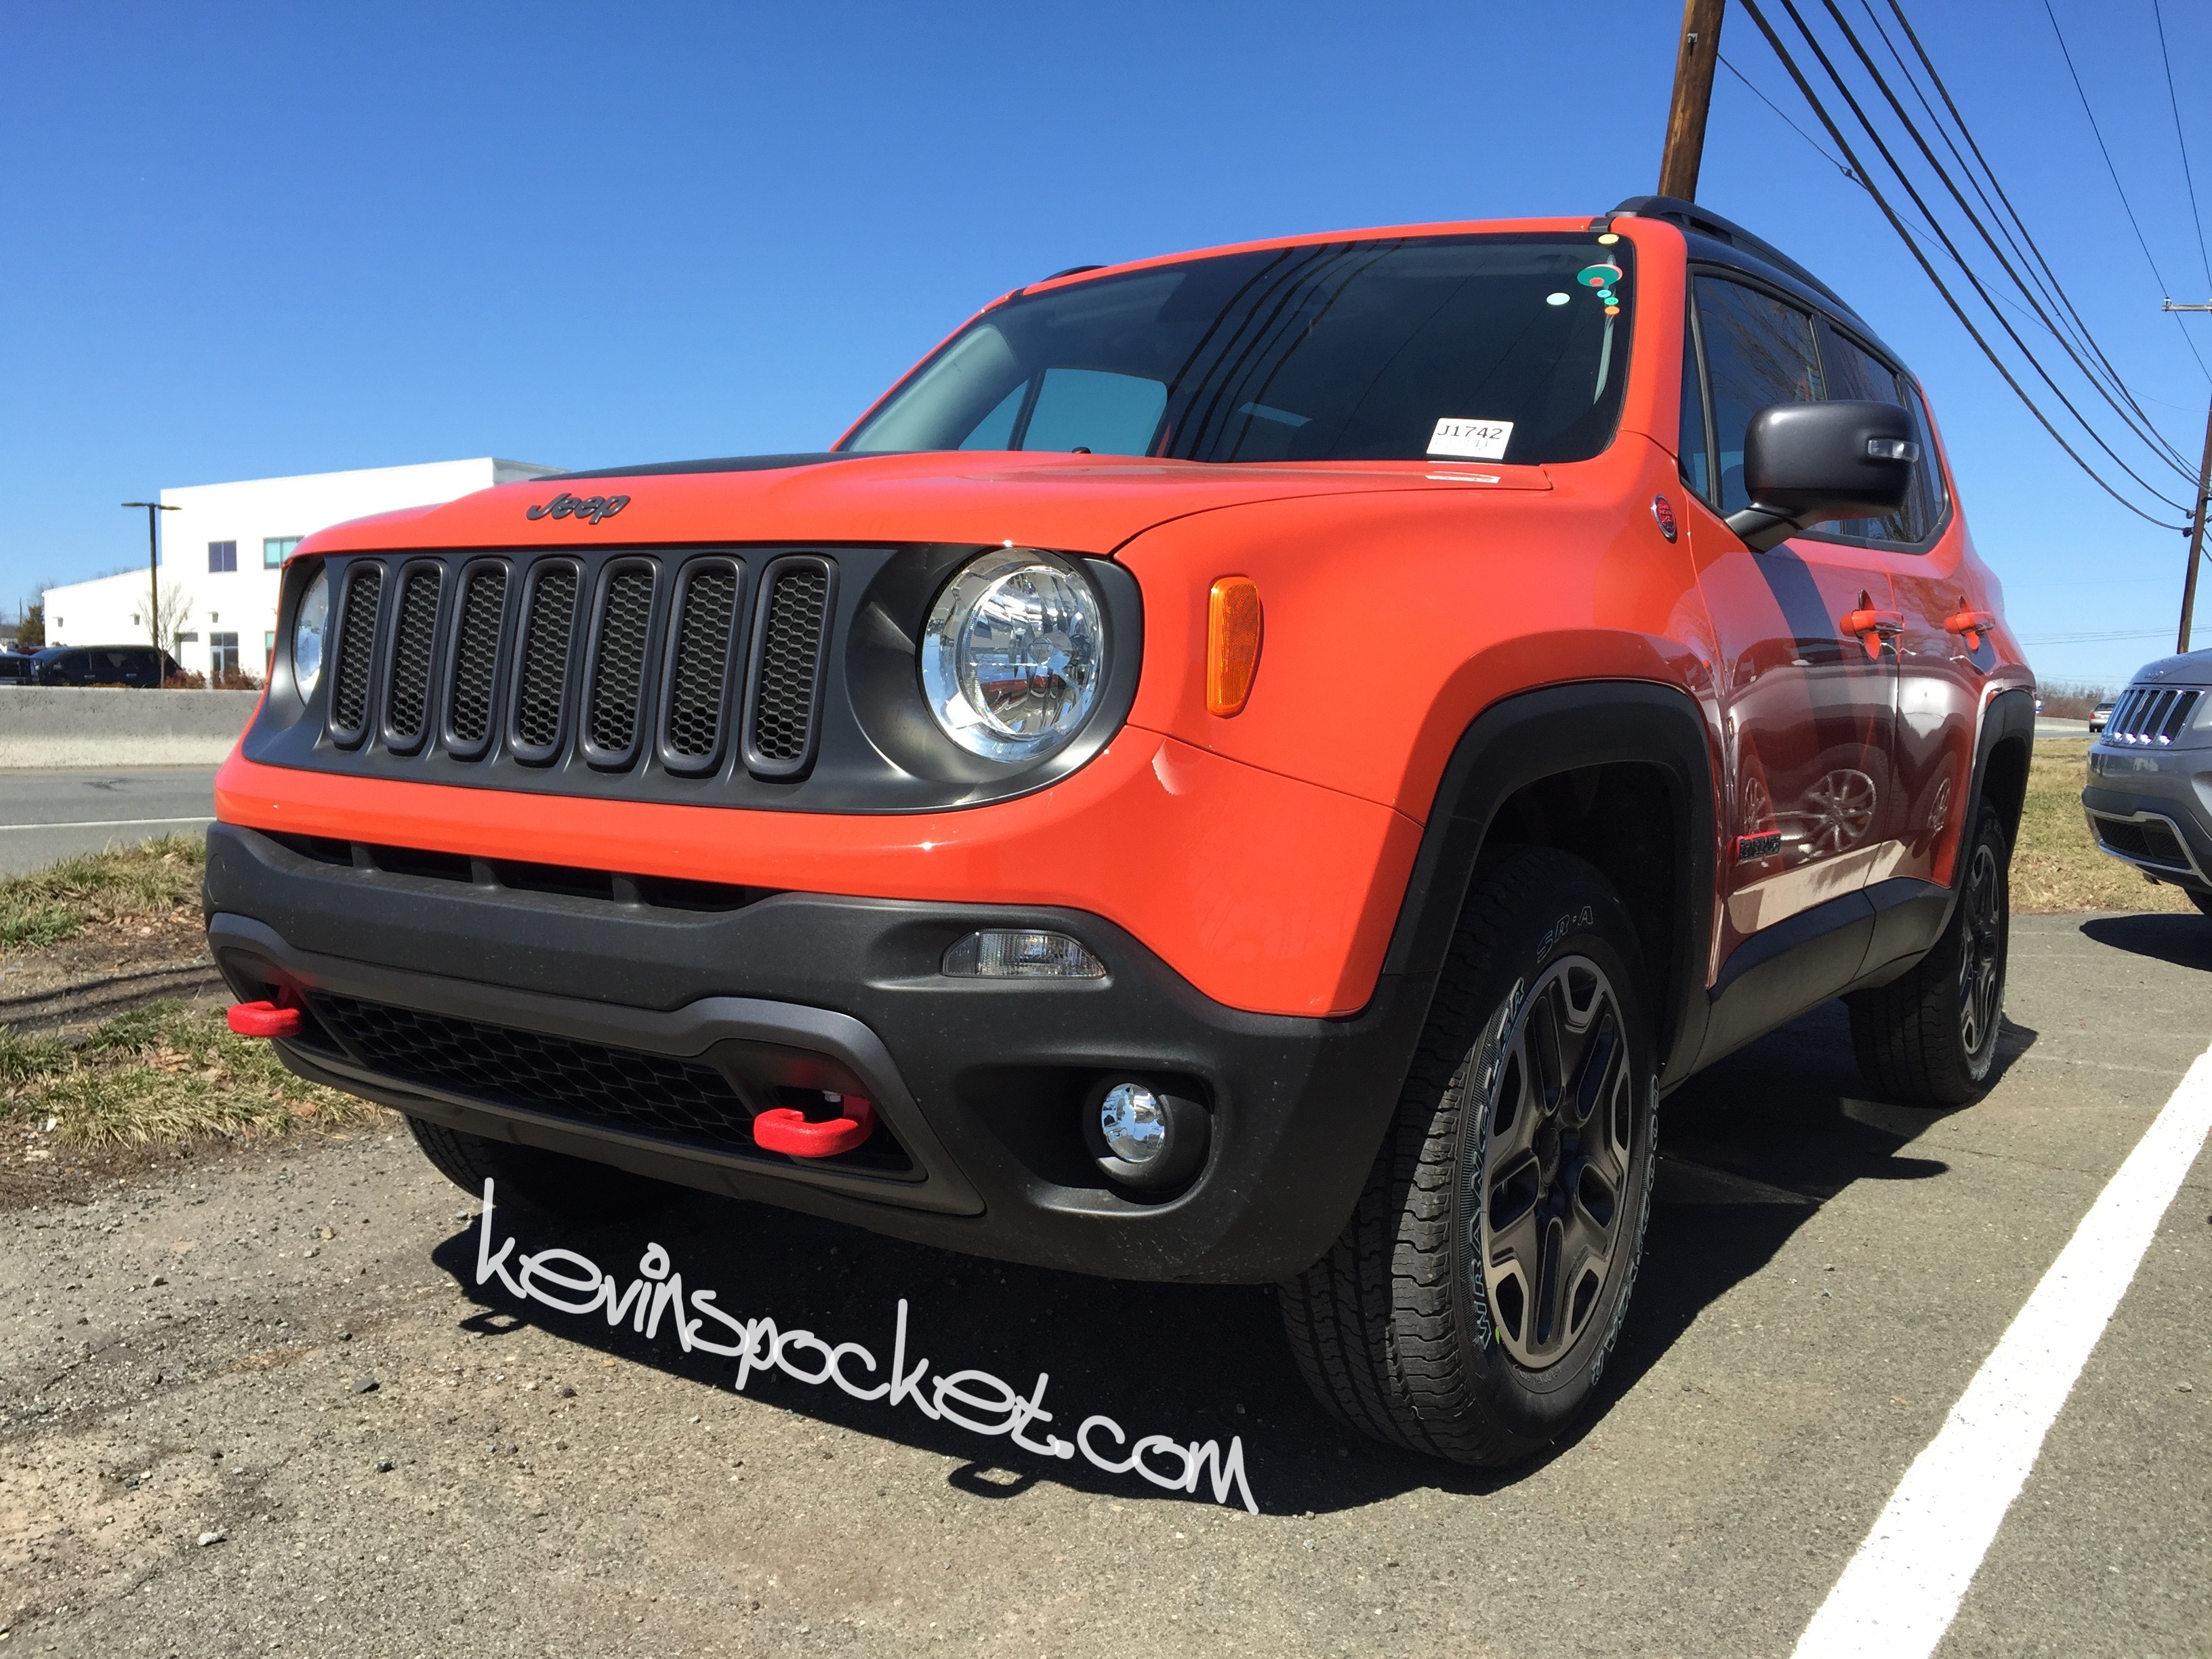 2015 jeep renegade trailhawk omaha orange 006 kevinspocket. Black Bedroom Furniture Sets. Home Design Ideas